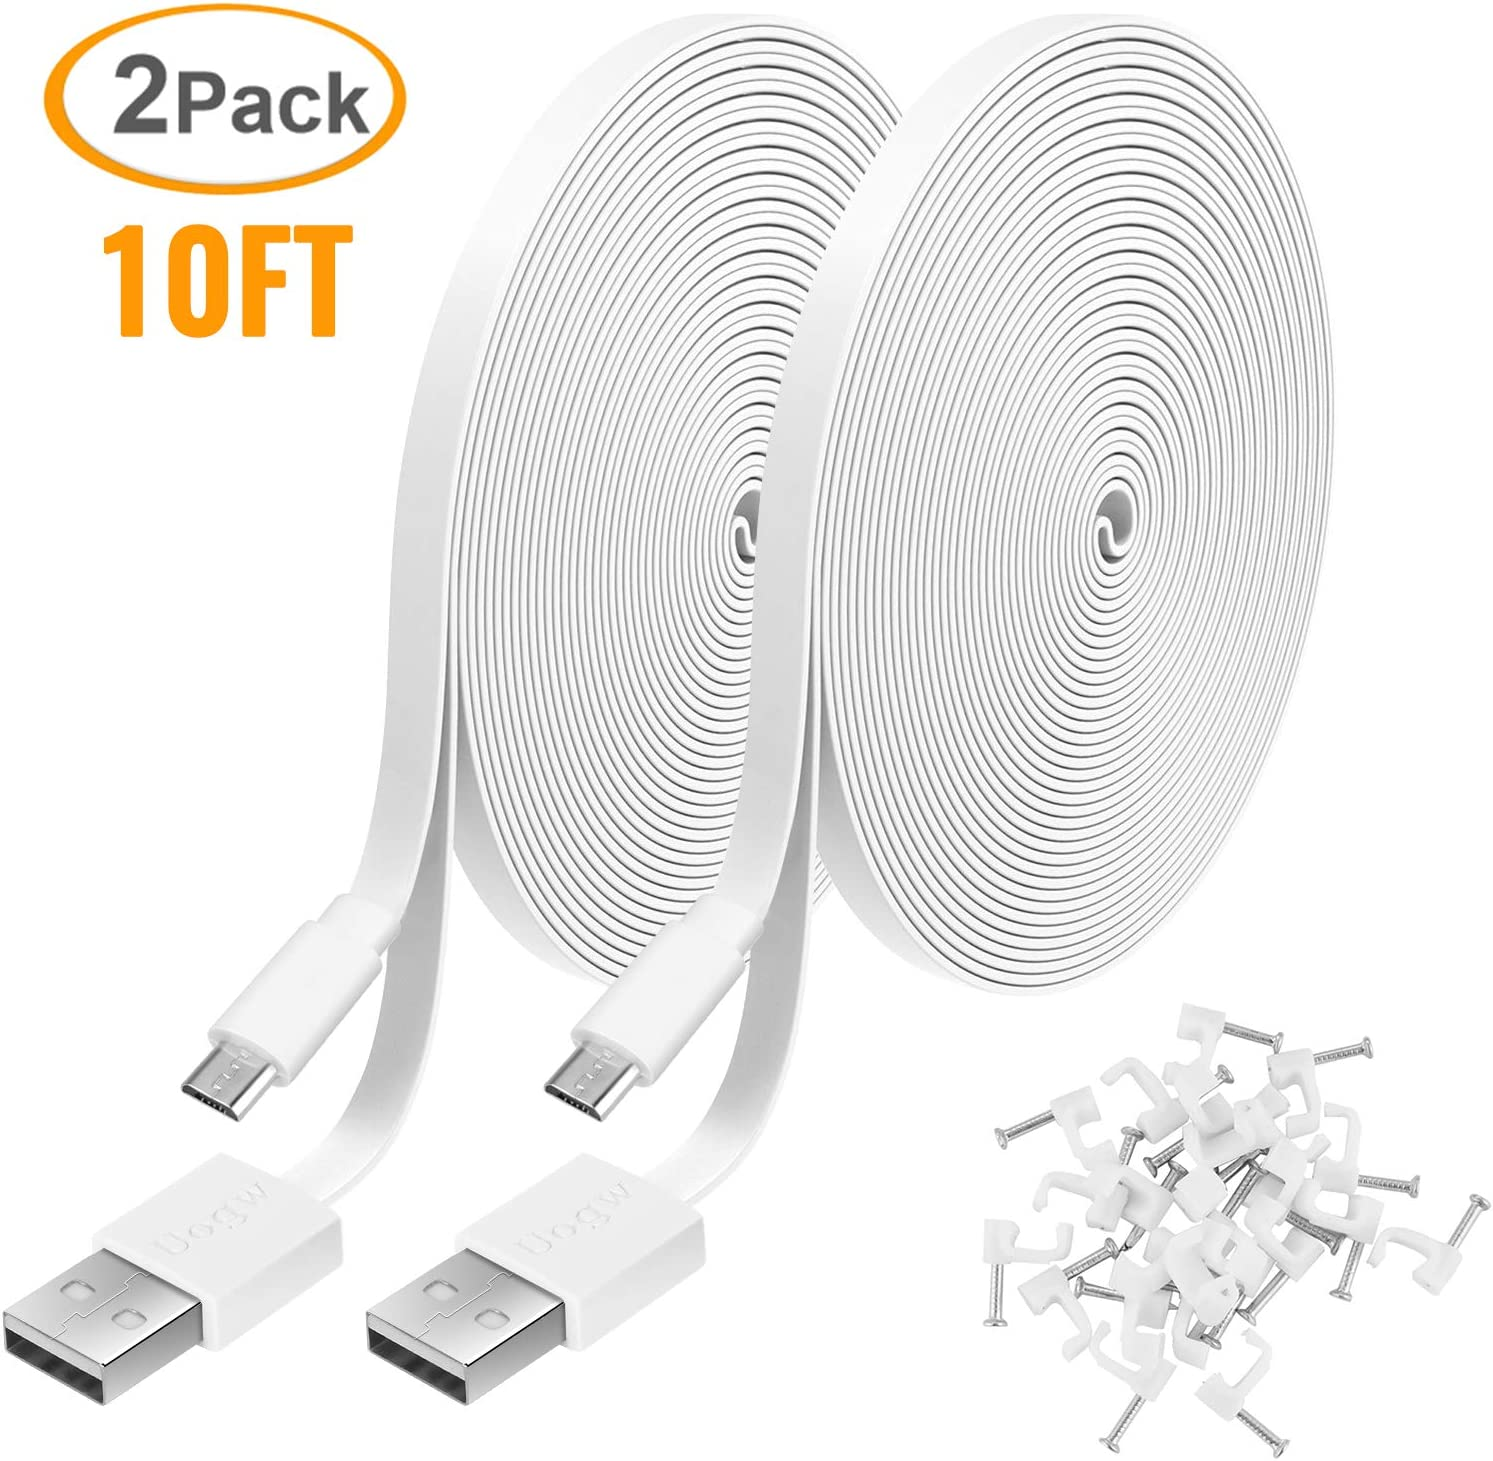 Blink XT Cam BENSN Extension Cable 10Ft Wyze Cam Pan Kasa Cam Nest Cam 5V Camera USB Power Cord for WyzeCam Dropcam 2 Pack Cloud Cam YI Dome Wireless Wi-Fi HD Camera